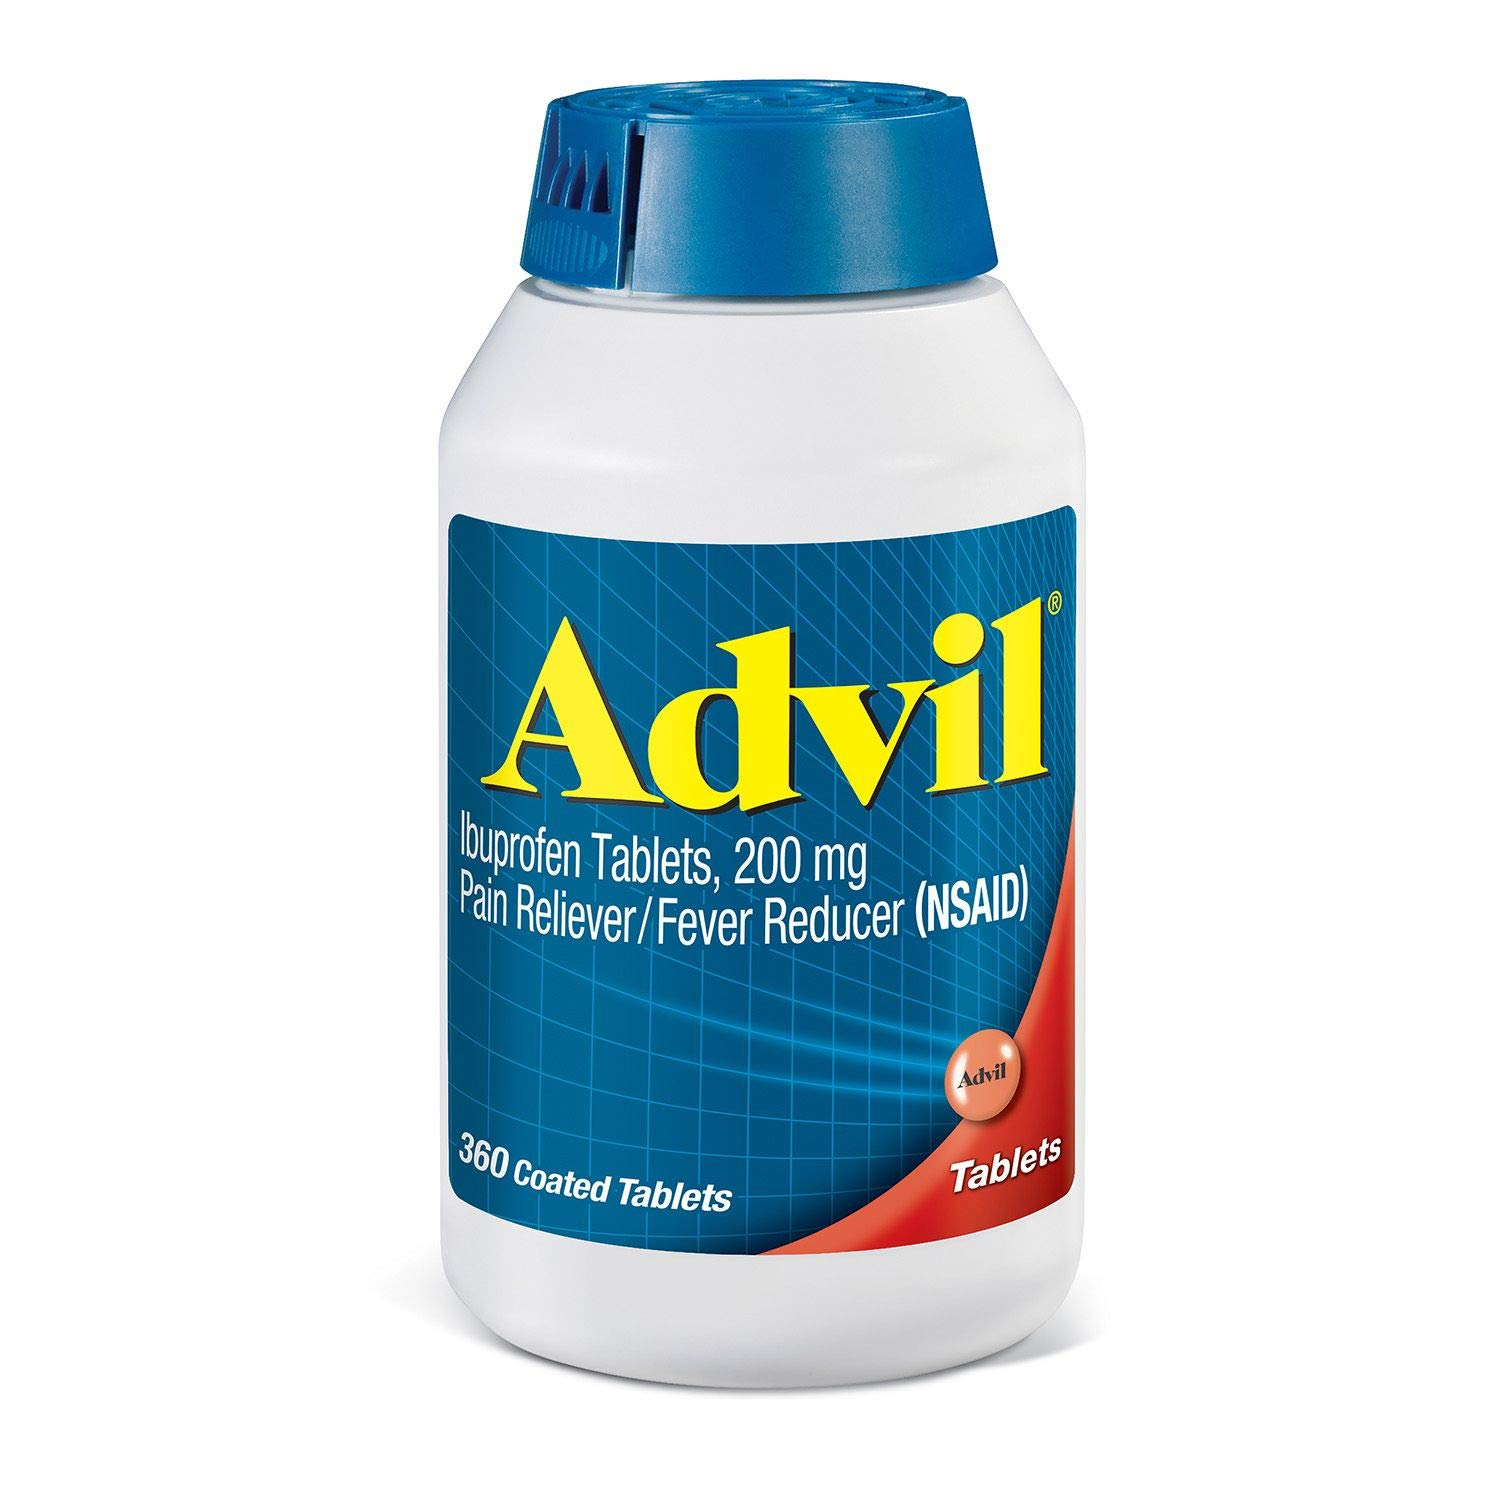 Advil Pain Reliever/Fever Reducer, 200mg Ibuprofen, Special Larger Size 2 Pack ( 360-Count Coated Tablets Each ) by Advil